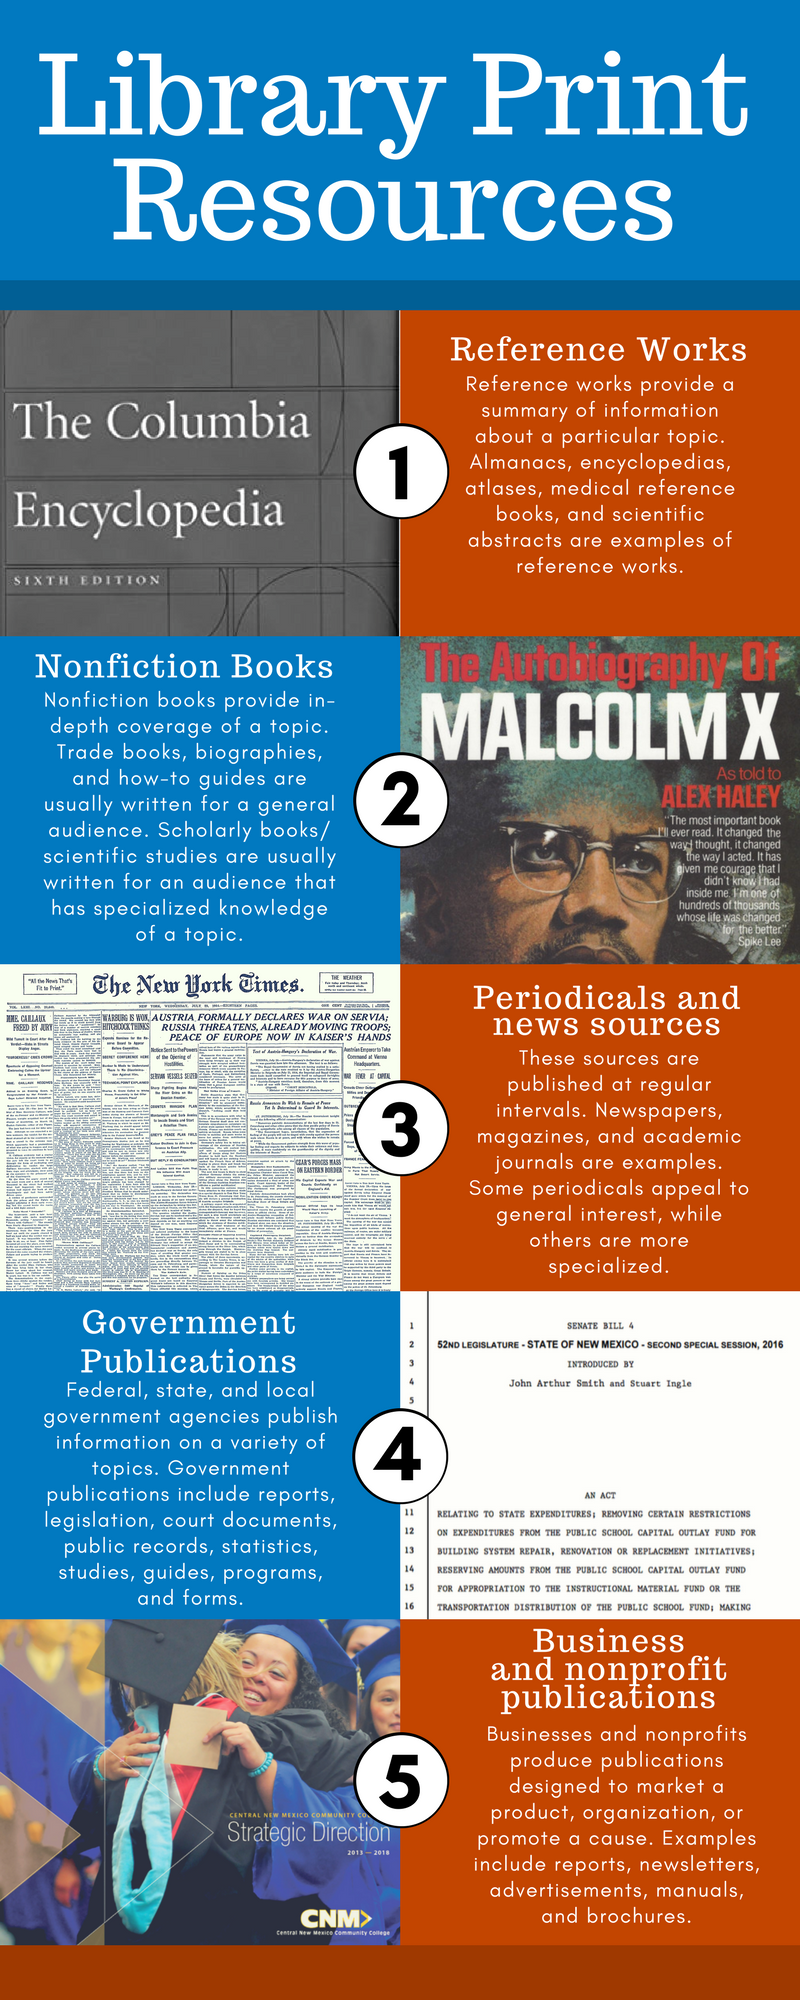 Library Print Resources: Reference works, nonfiction books, periodicals/news sources, government publications, business/nonprofit publications